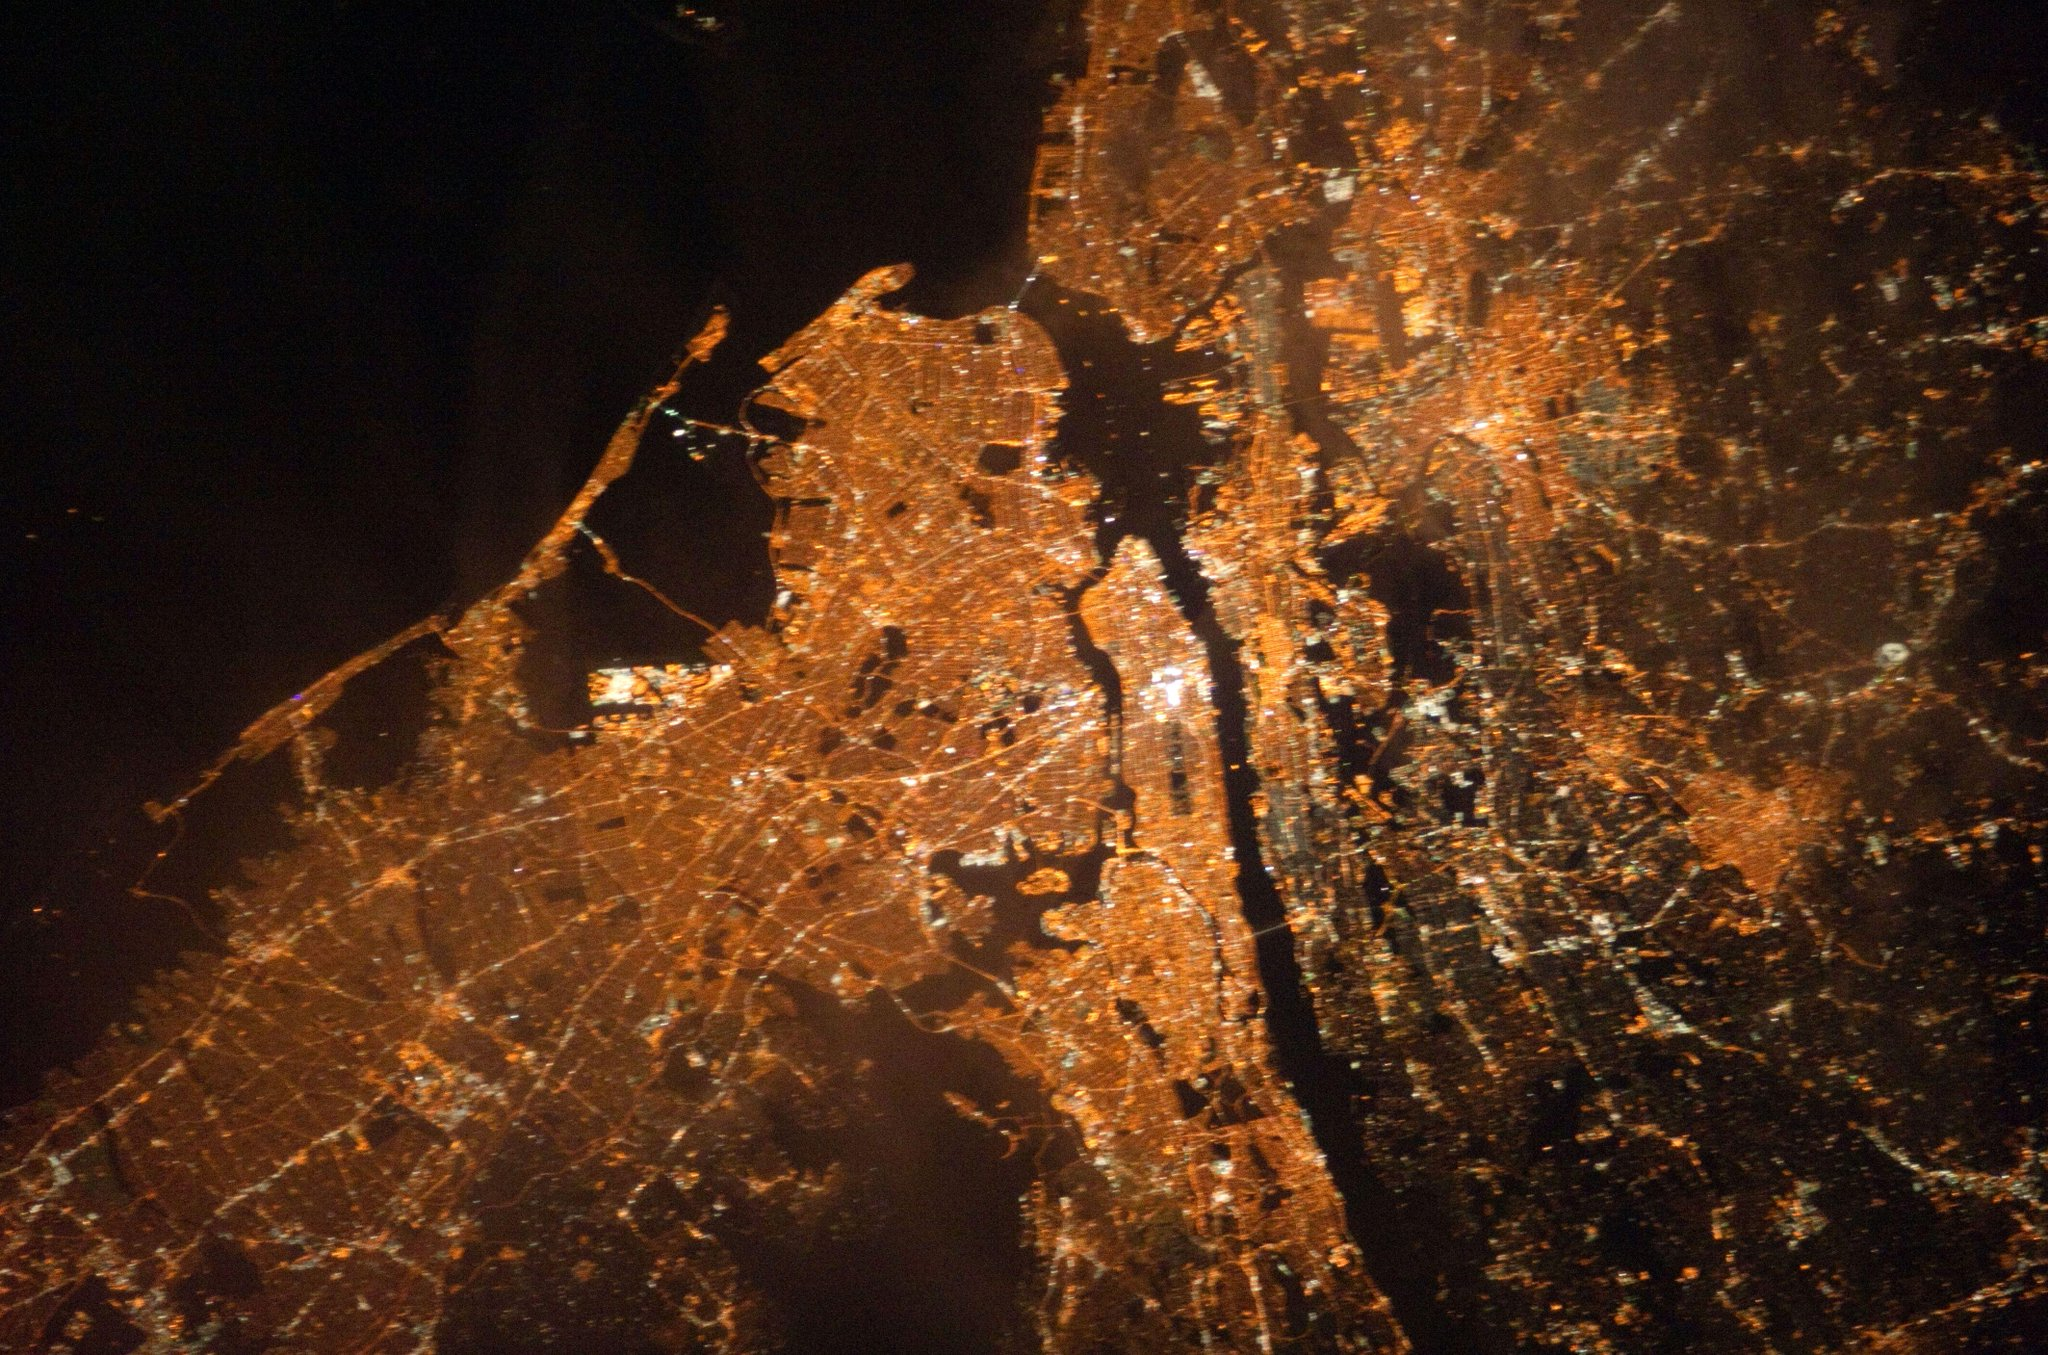 Twitter / PC0101: New York/New Jersey, at night, ...